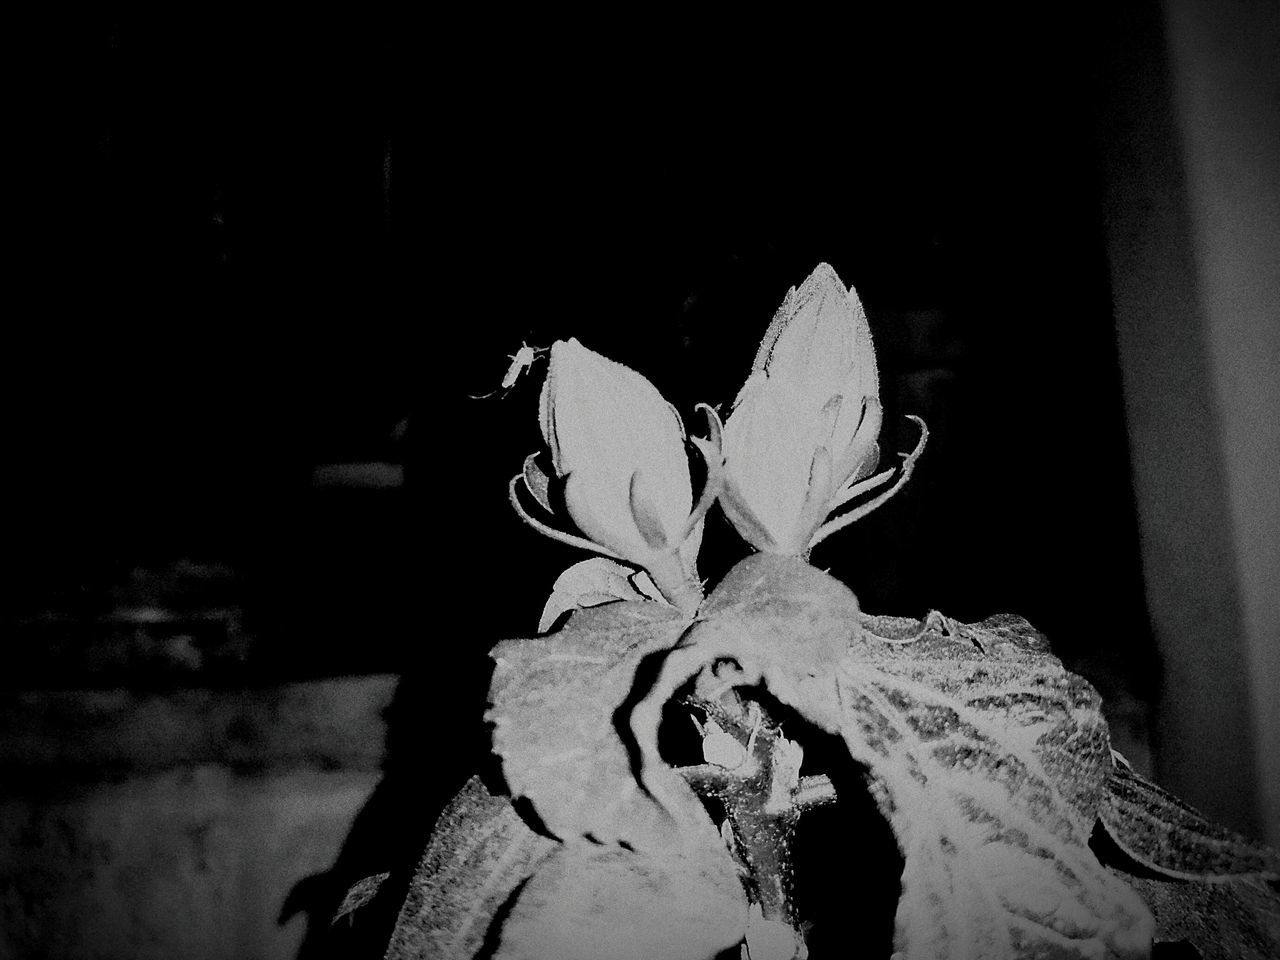 Hanging Out Taking Photos Check This Out Hello World Enjoying Life Black & White Black And White Black And White Photography Mosquito Mosquito On The Flower Hibiscus Flower Hibiscus Hibiscus 🌺 Hibiscus Buds Naturesdiversities Natures Diversities The Great Outdoors - 2016 EyeEm Awards Monochrome Photography Flower Collection Insect On A Flower Macro Photography Macro Blackandwhite Macro_collection Macro Beauty Macro